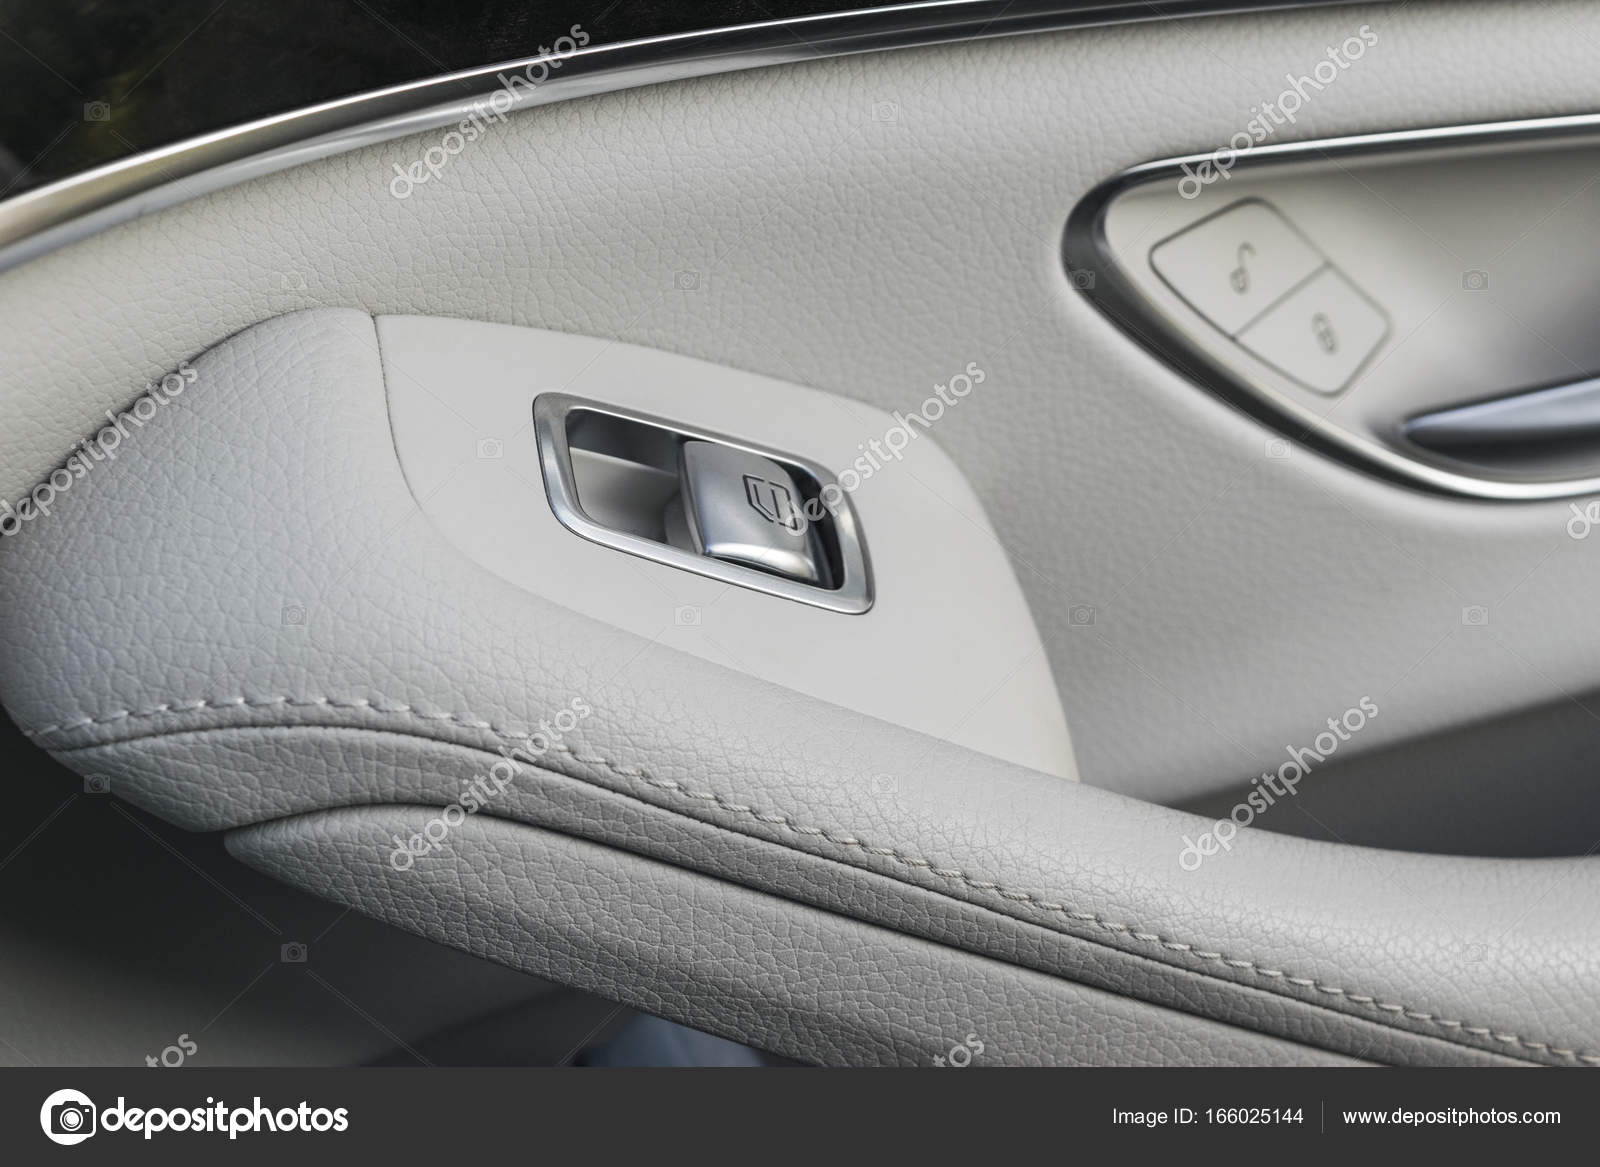 https://st3.depositphotos.com/10425000/16602/i/1600/depositphotos_166025144-stock-photo-car-white-leather-interior-details.jpg